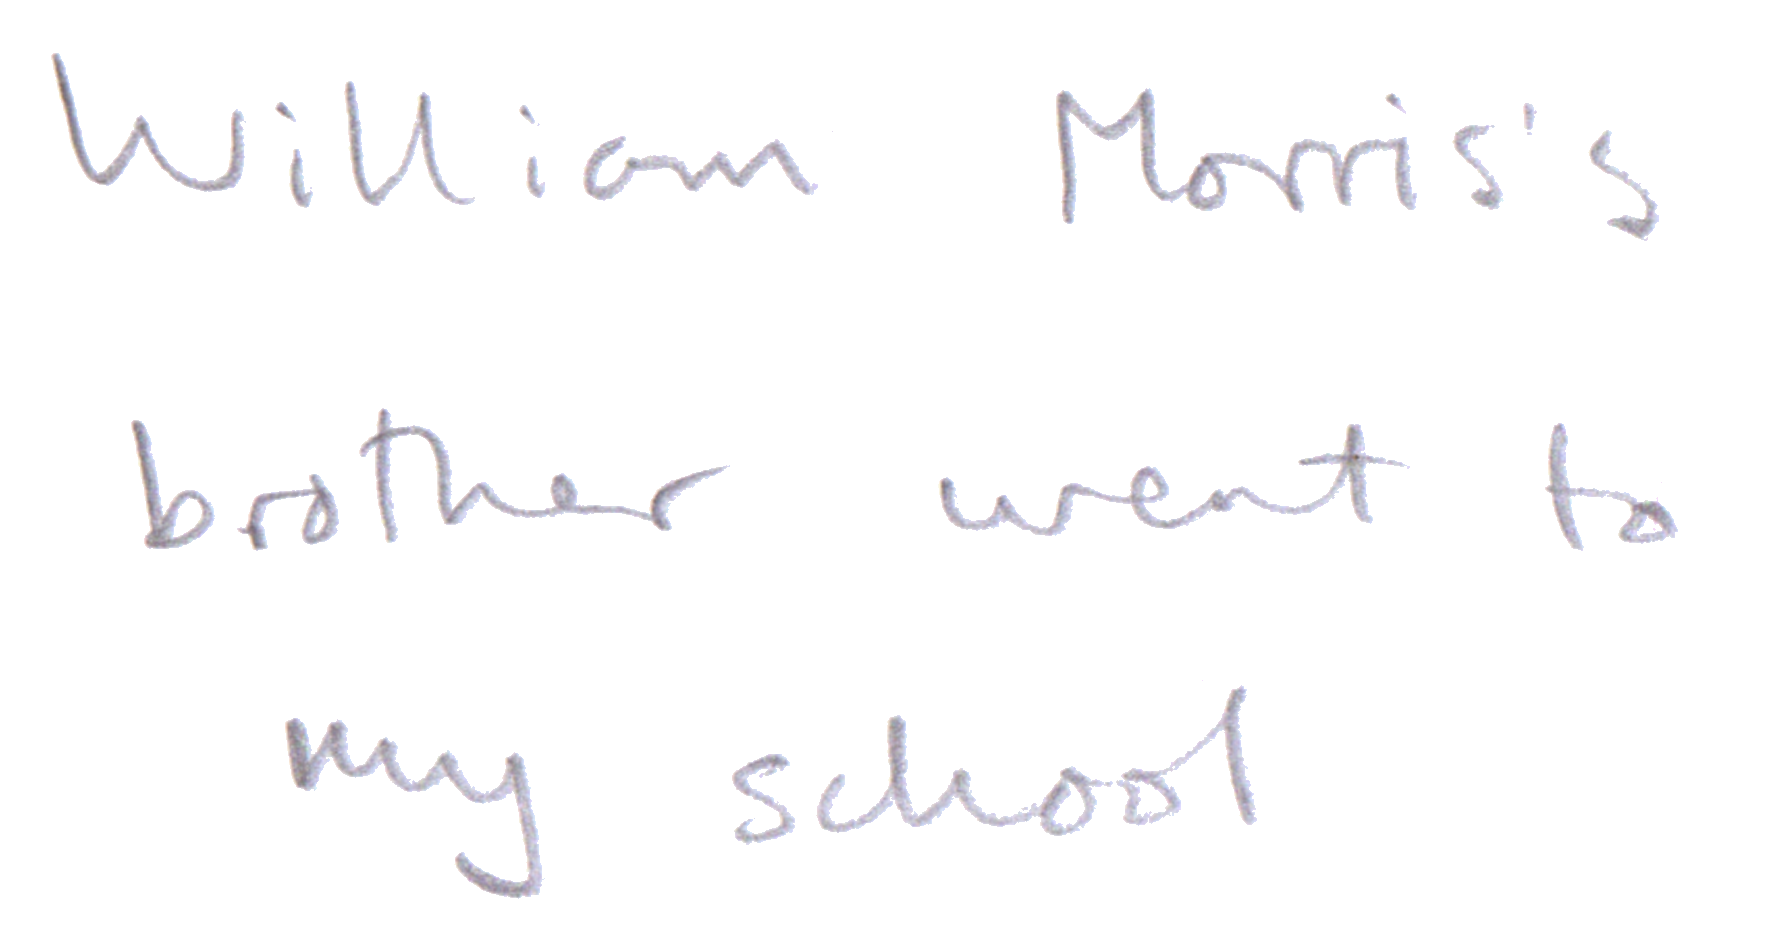 William_morris's_brother_went_to_my_school.png